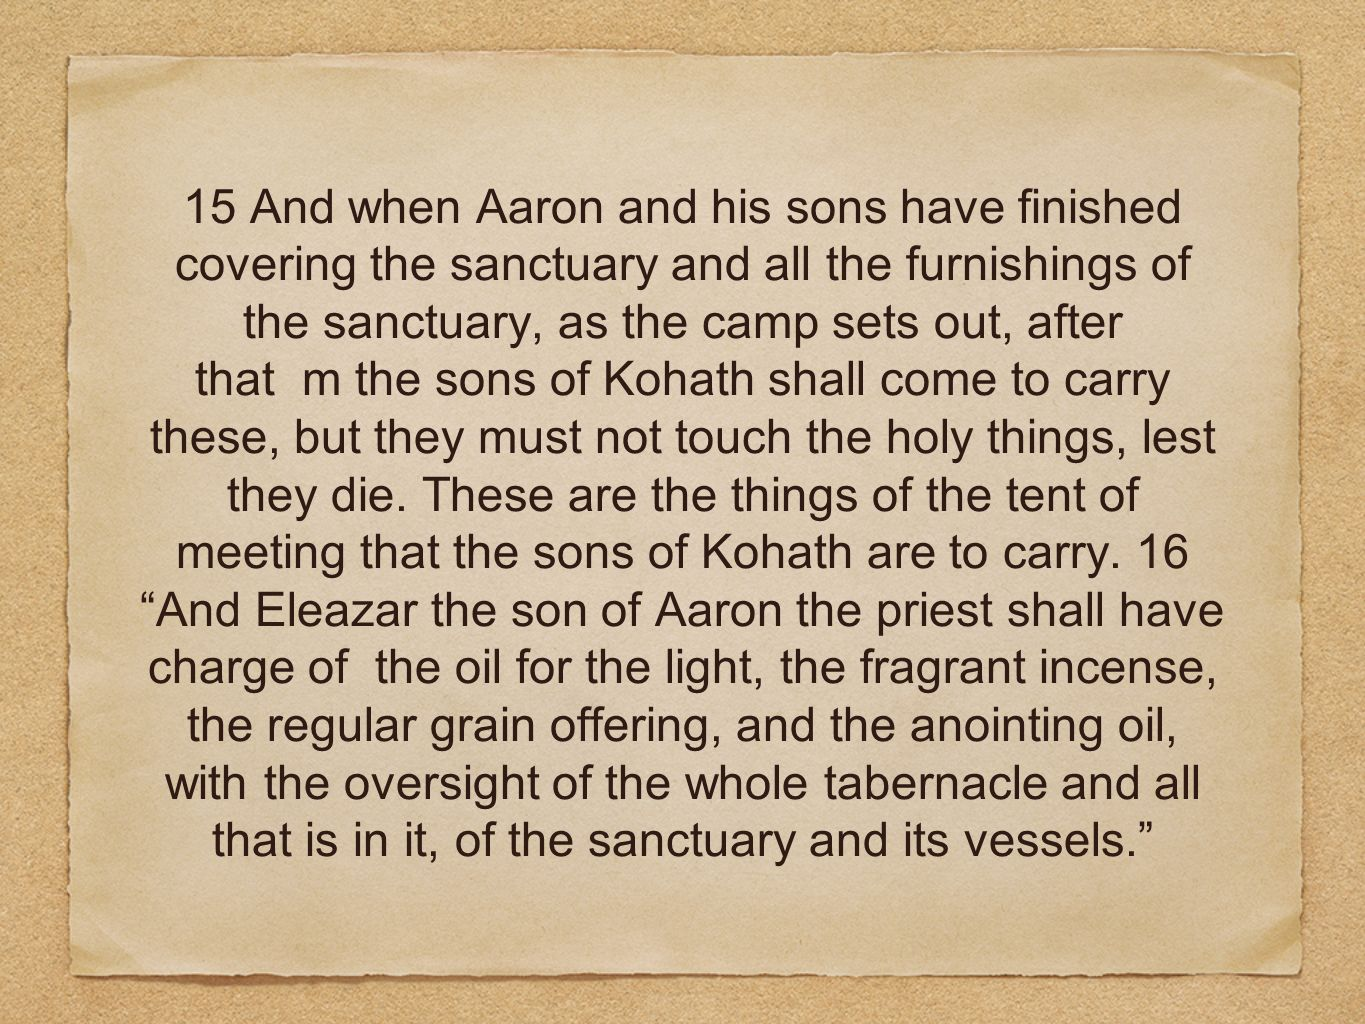 15 And when Aaron and his sons have finished covering the sanctuary and all the furnishings of the sanctuary, as the camp sets out, after that m the sons of Kohath shall come to carry these, but they must not touch the holy things, lest they die.